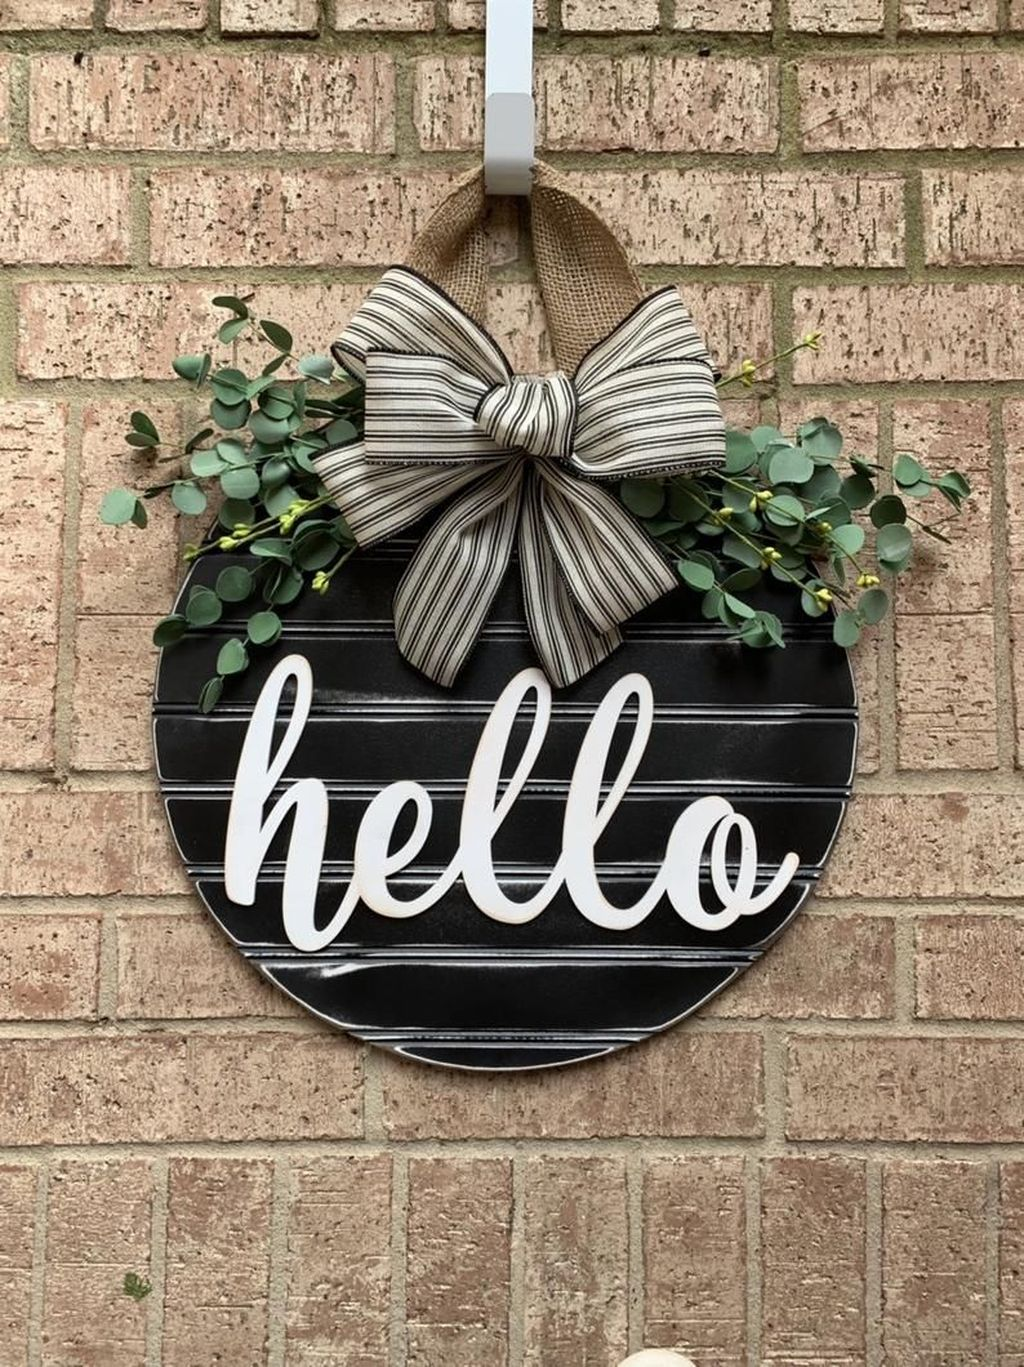 Inspiring Spring Door Wreaths For Your Home Decoration 17